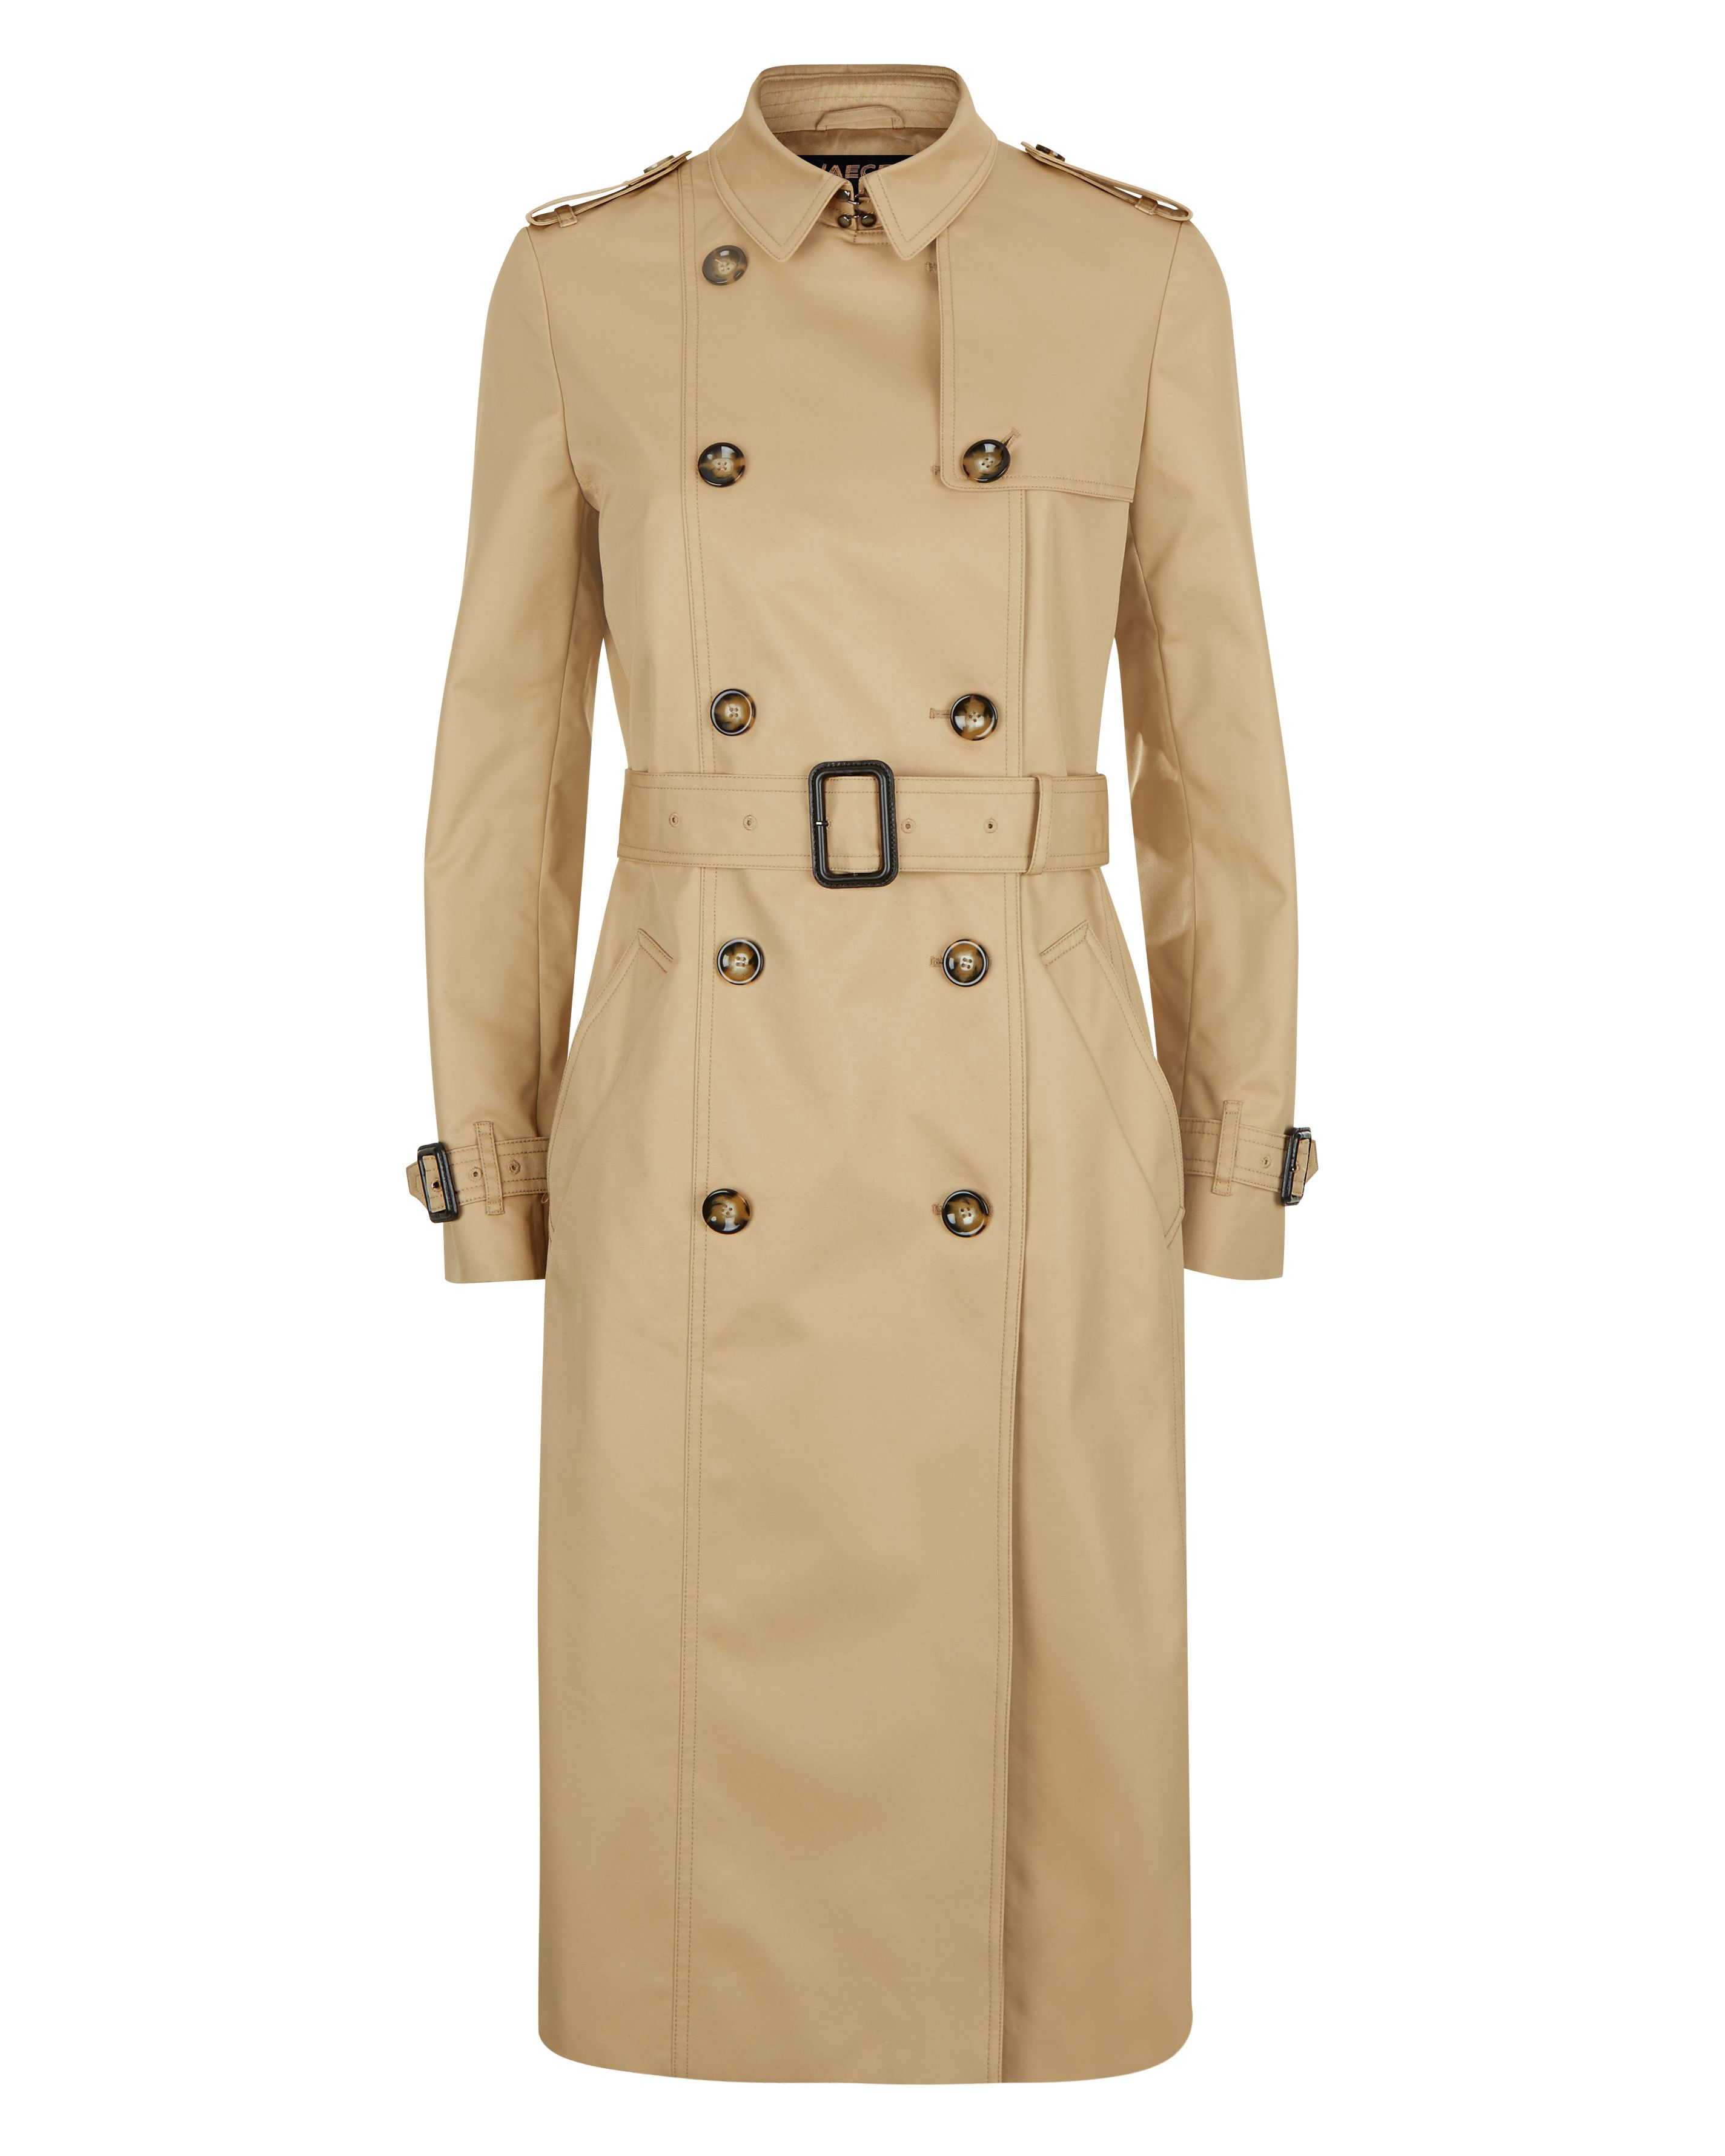 Jaeger Classic Trench Coat, Neutral